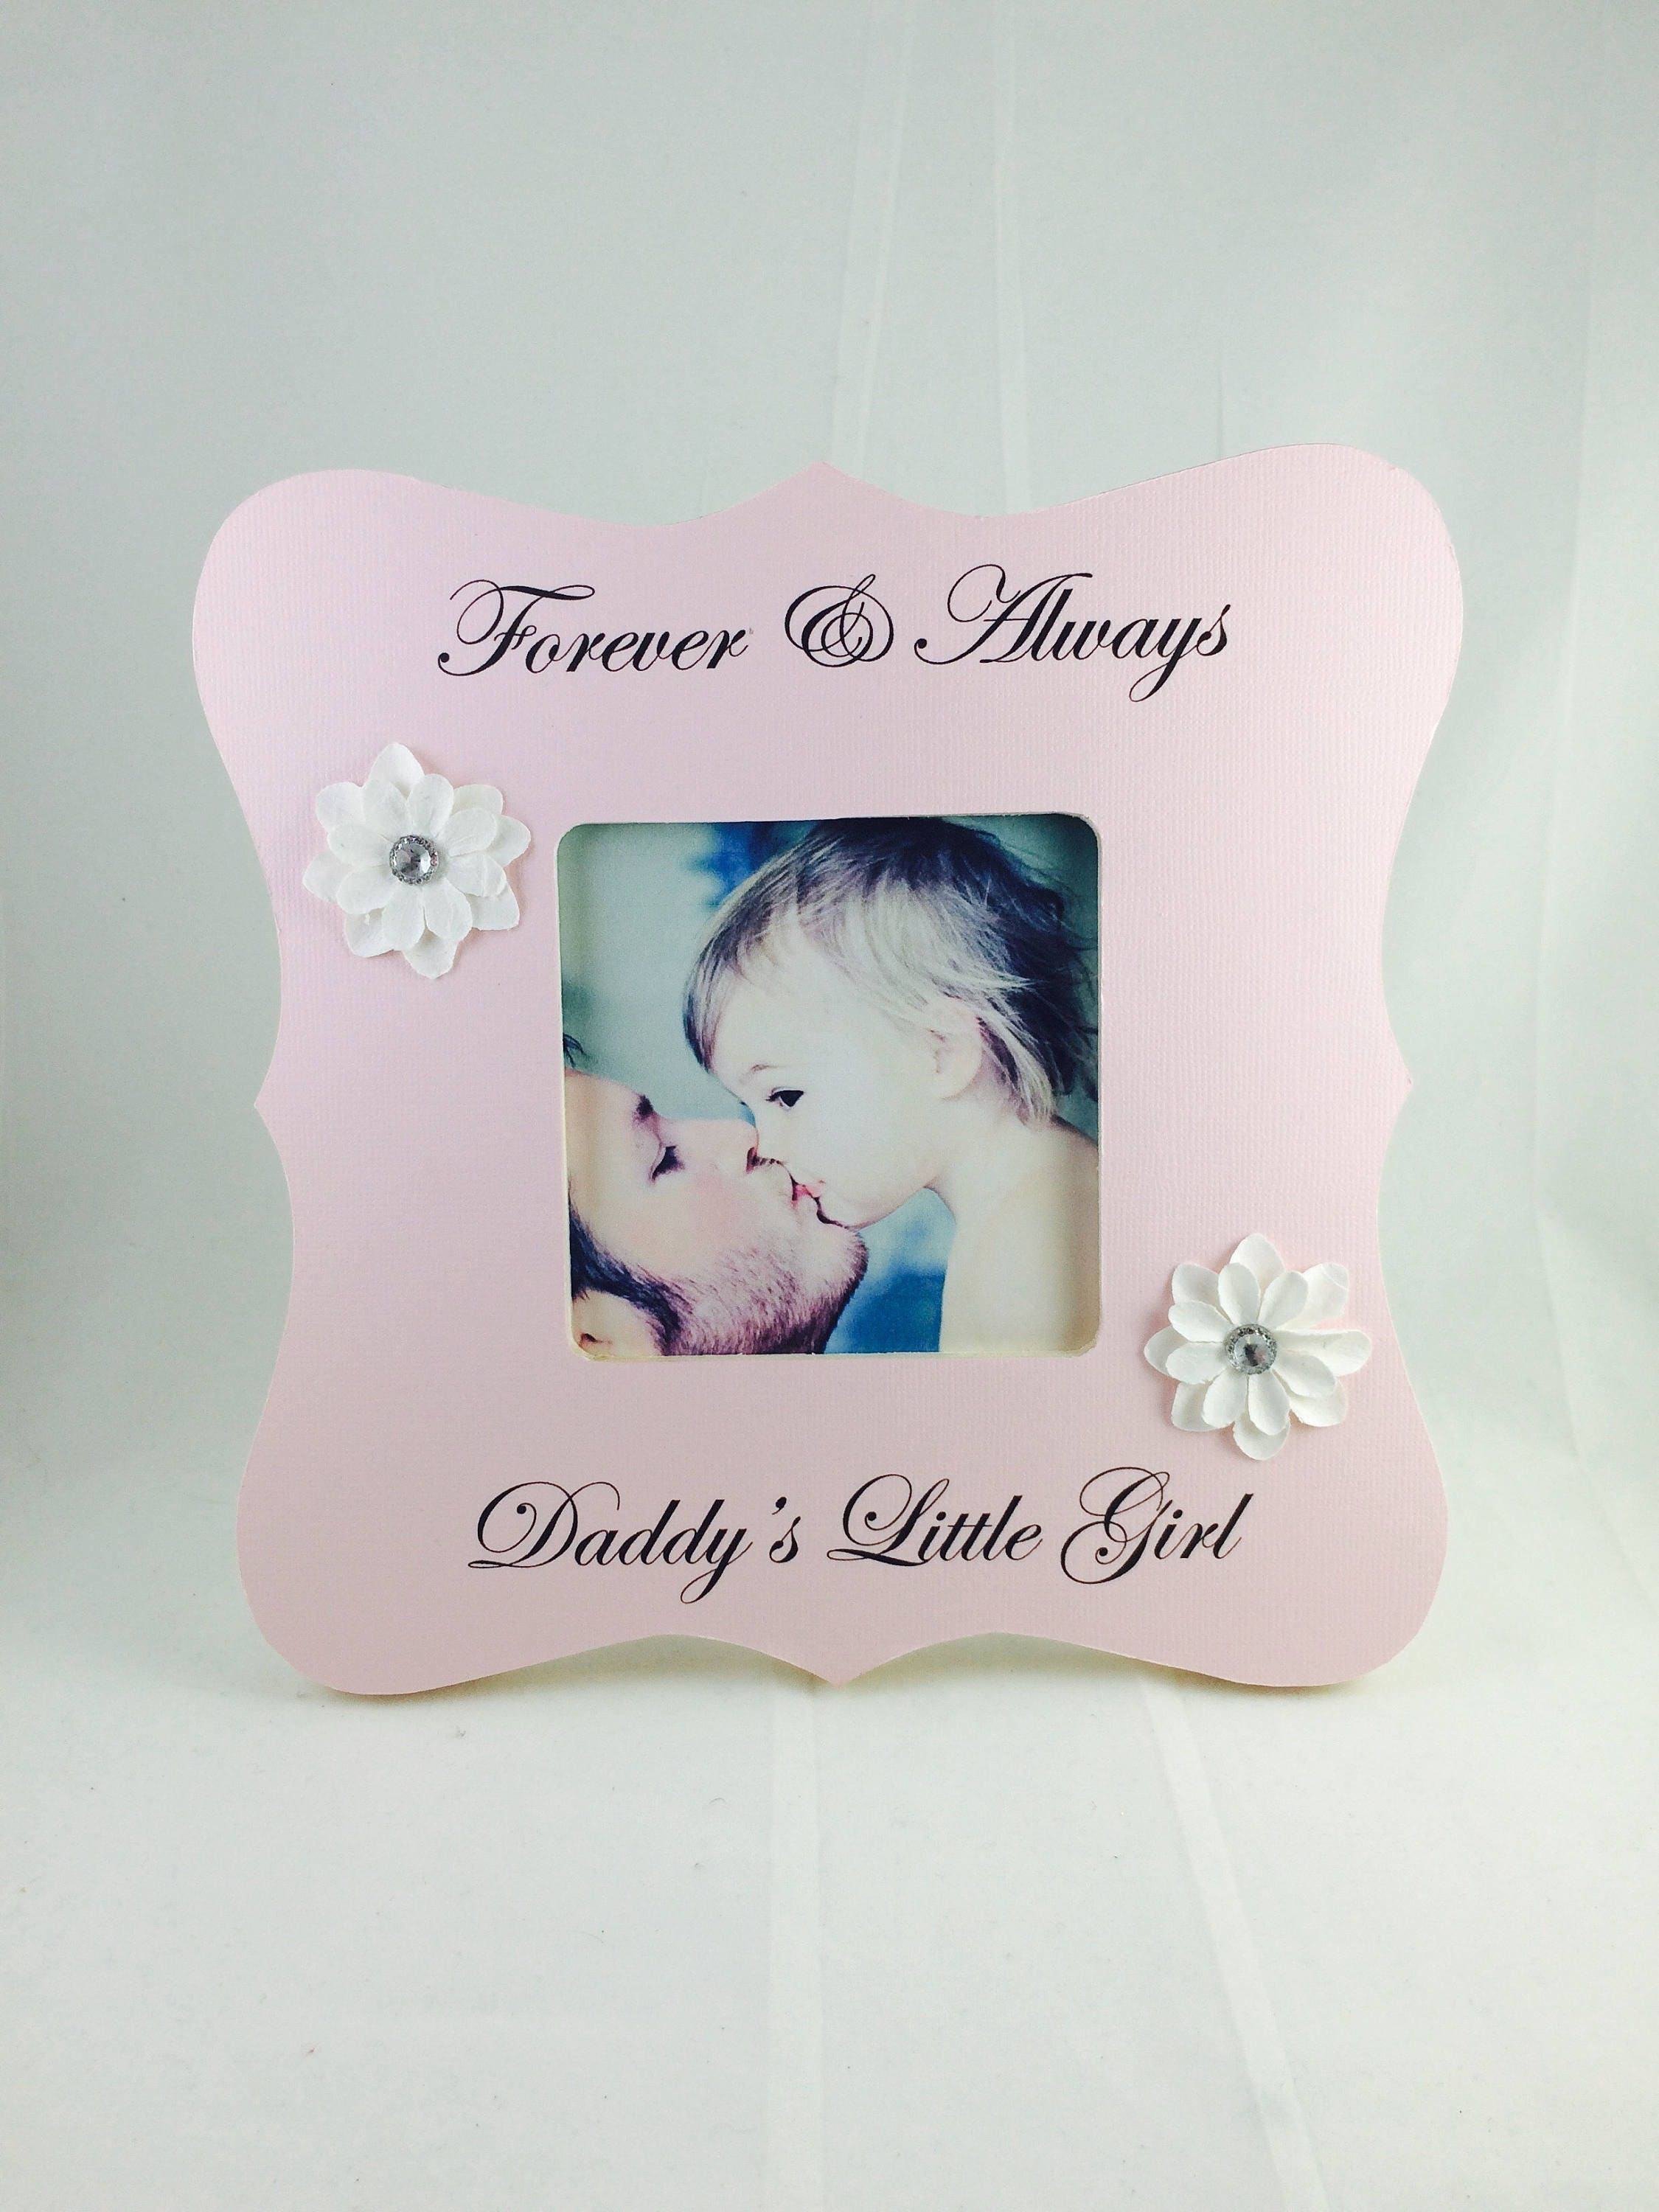 Father daughter dad gift from daughter gift for dad frame for Just my style personalized jewelry studio